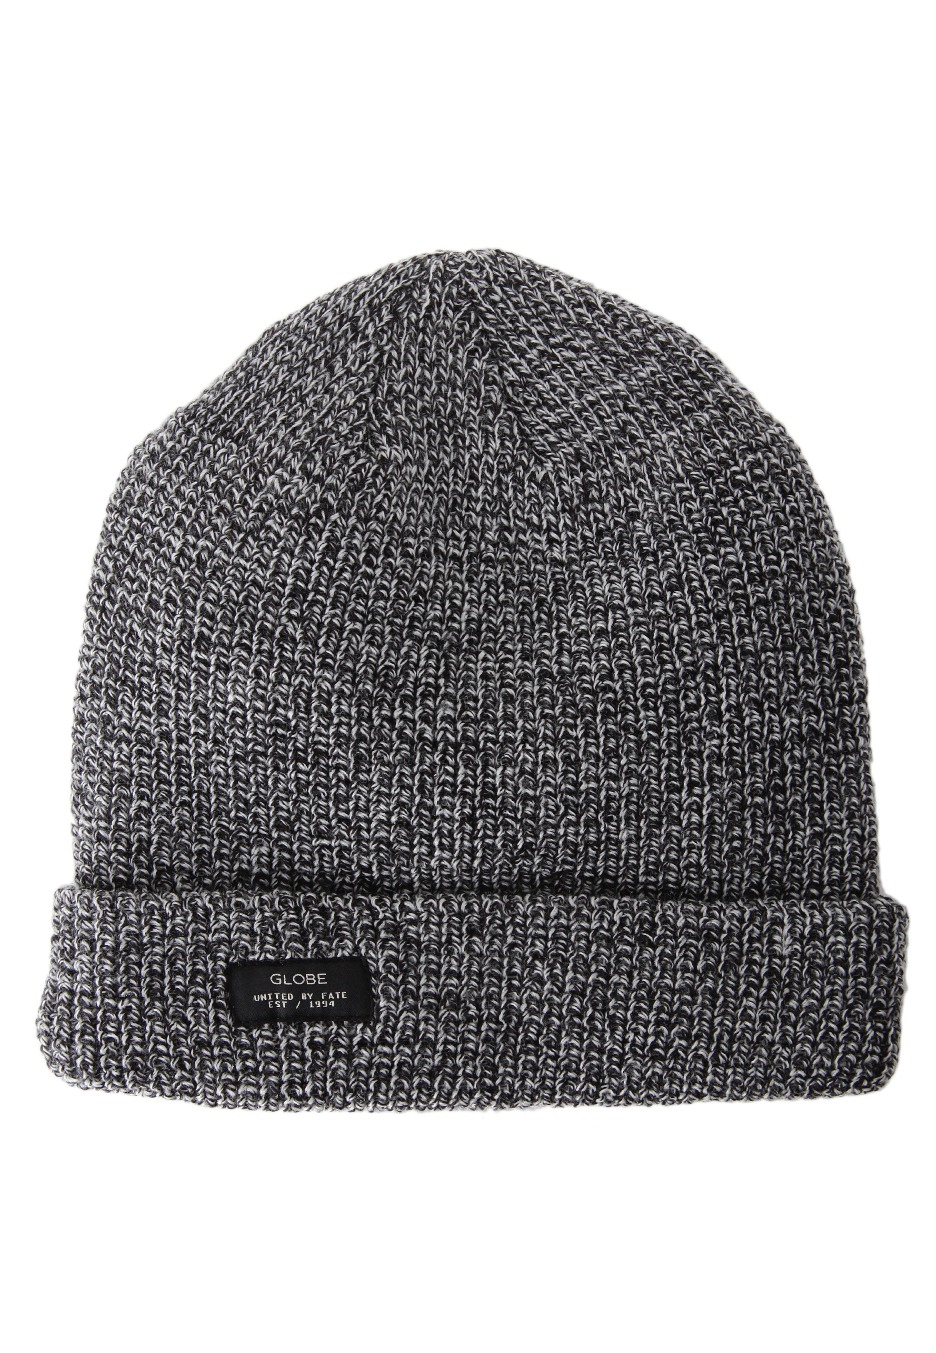 64bcdc9afbb Globe - Halladay Grey Marle - Beanie - Streetwear Shop - Impericon.com UK